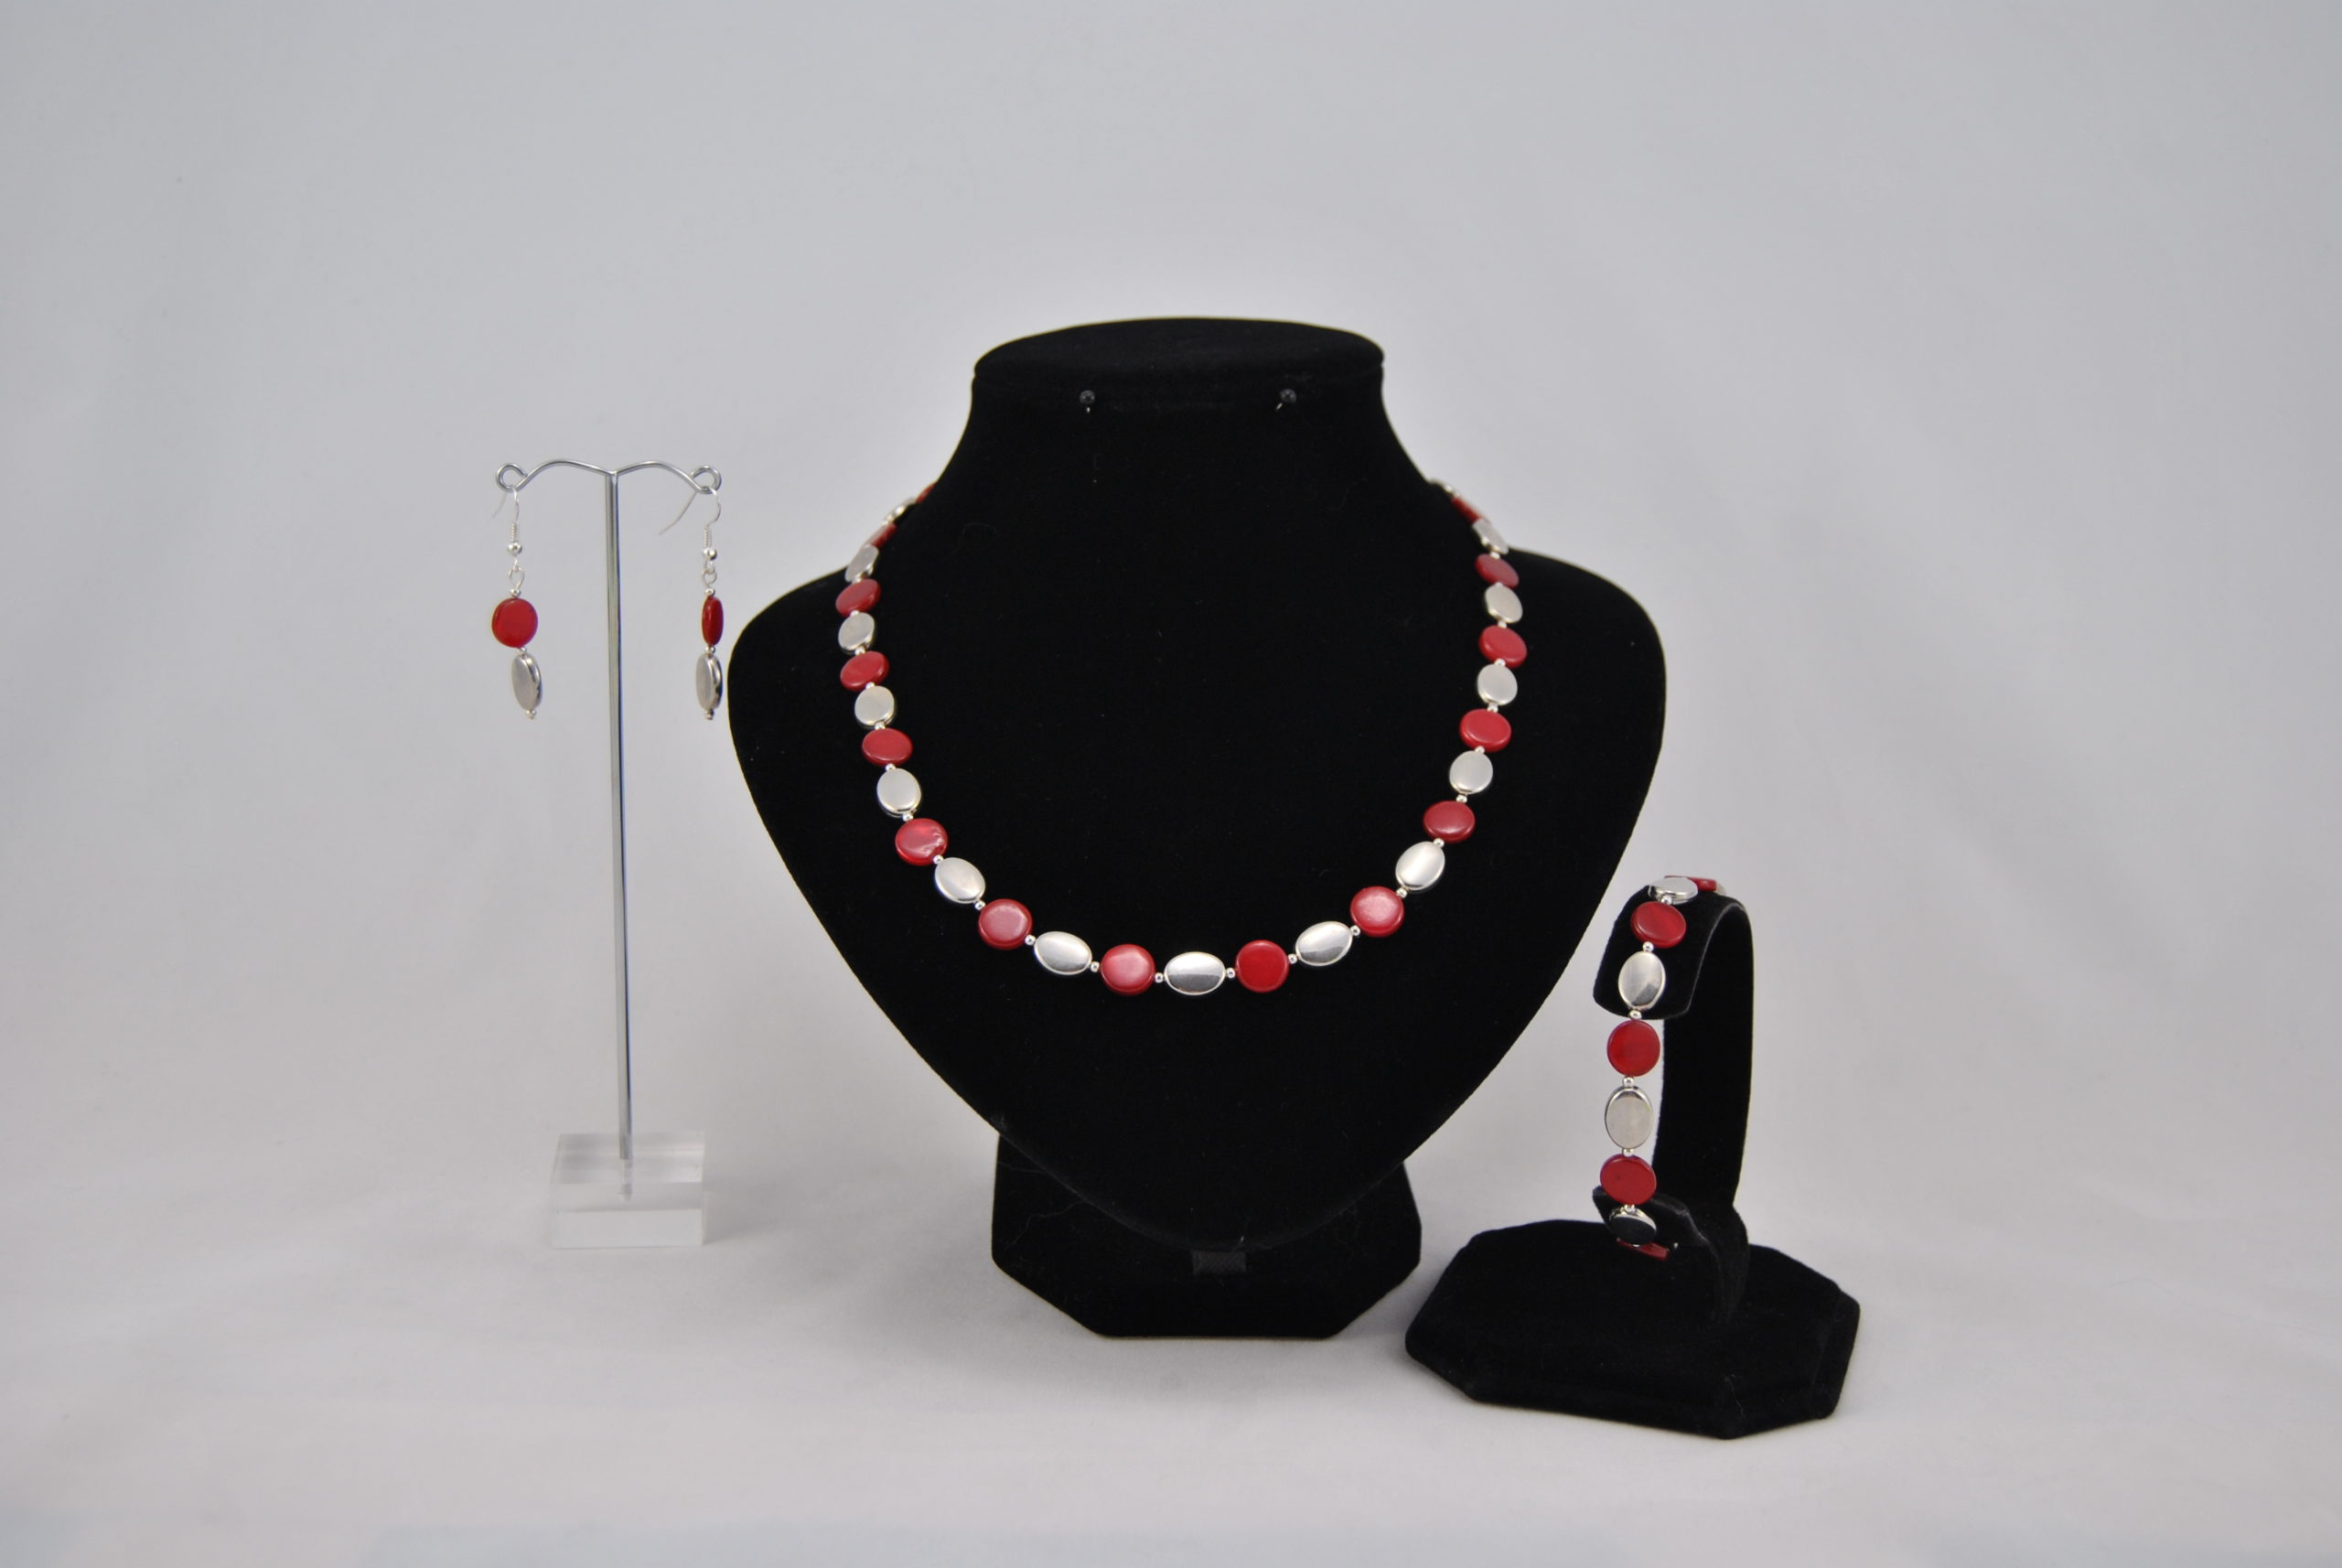 Red Disks Silver Oval Beads Necklace Bracelet Ear Rings